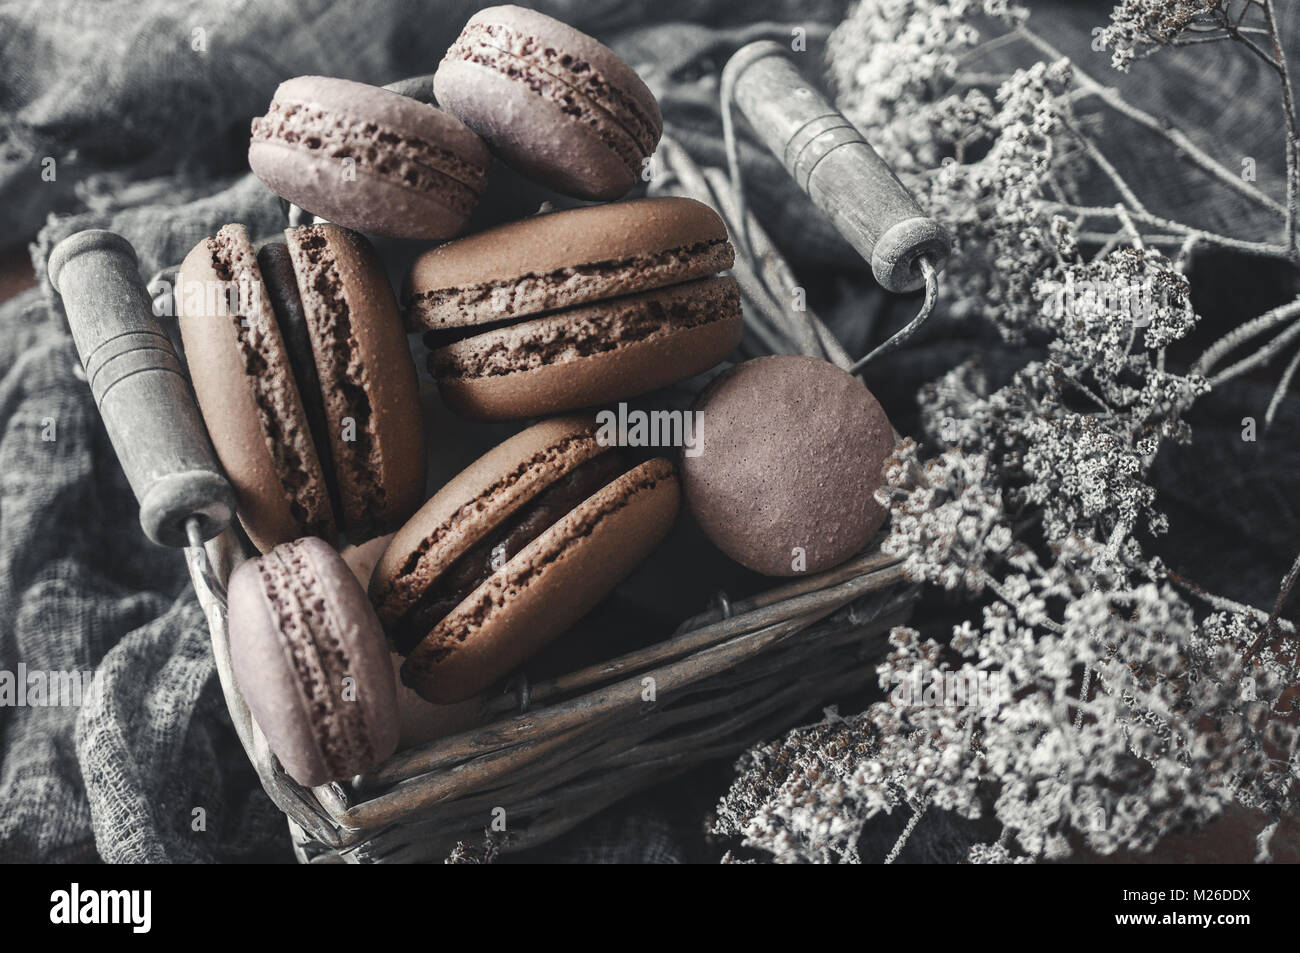 Freshly baked macaroons in wicker basket with handles with small white flowers on wooden background. - Stock Image